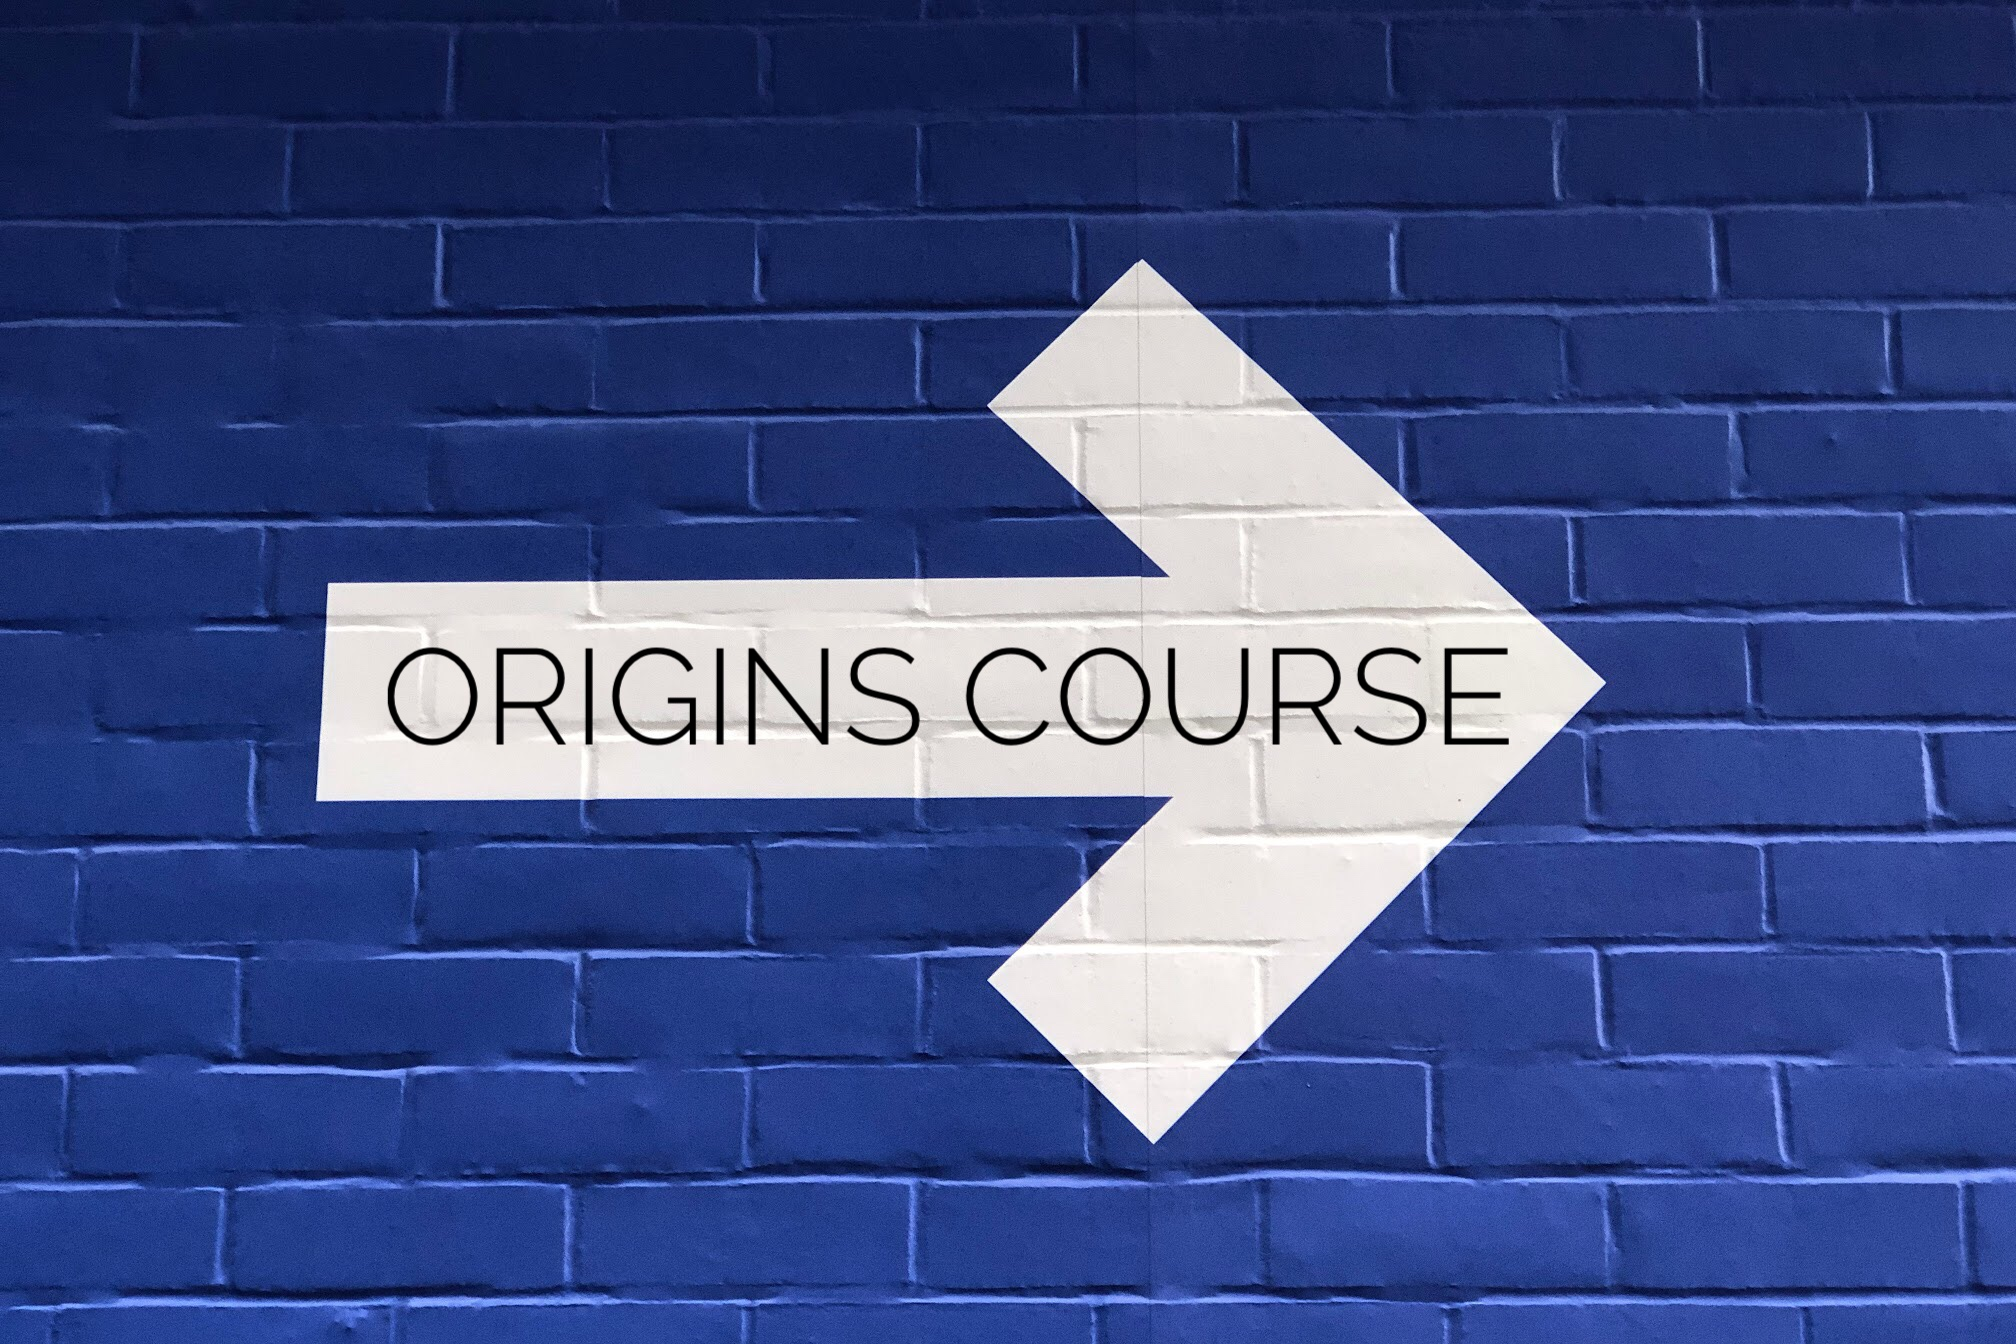 The Offspring Origins Course is a four week course that will acquaint you with the heart and vision of Offspring Church as well as help you discover your gifts and role in bringing revival to our city and beyond. Origins follows service every Sunday.